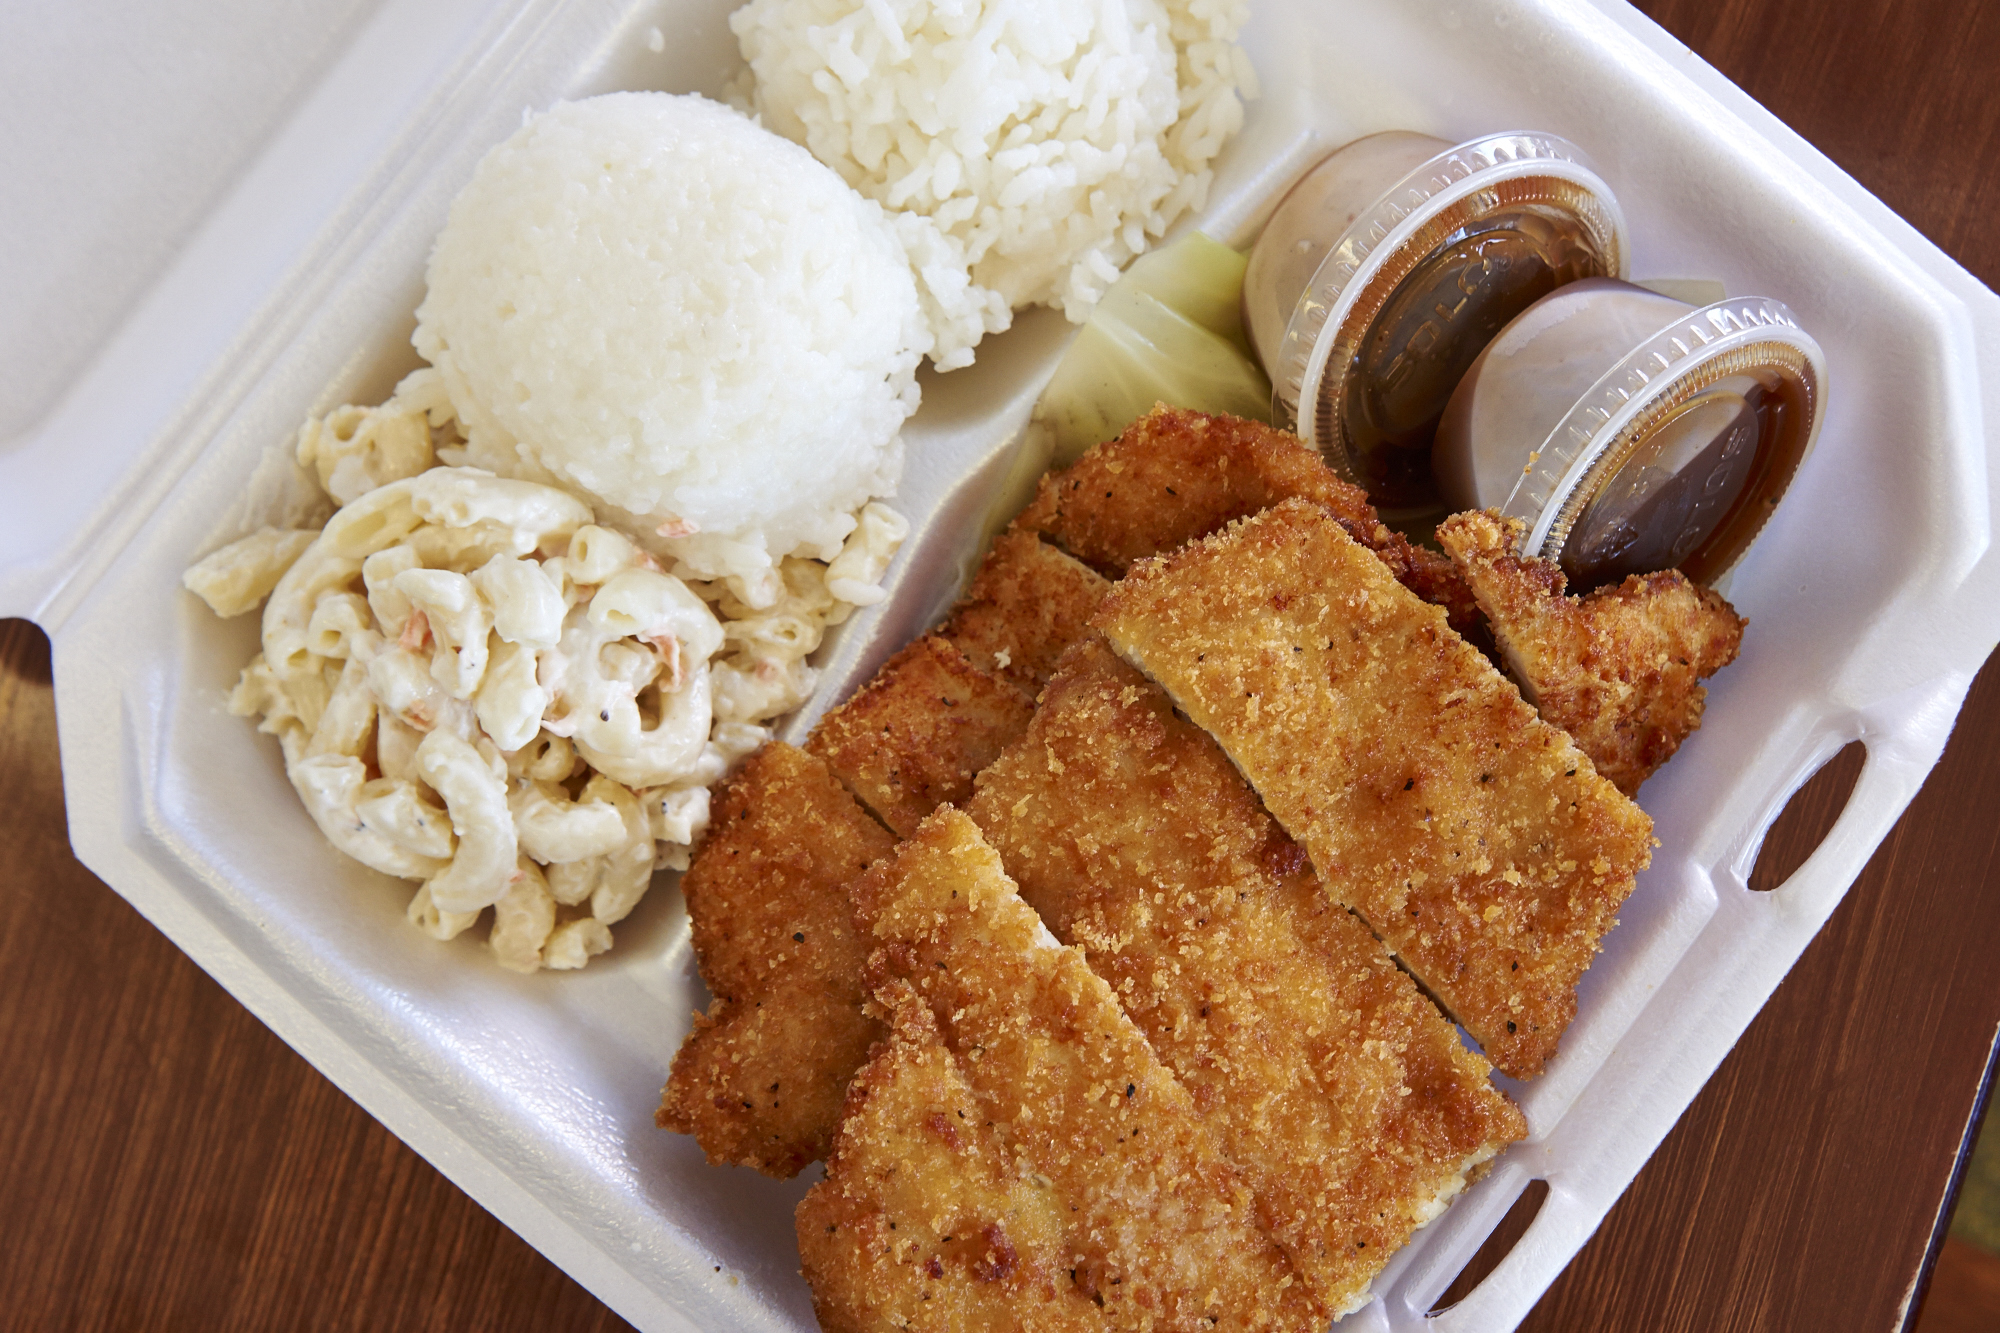 A Brief History of the Hawaiian Plate Lunch